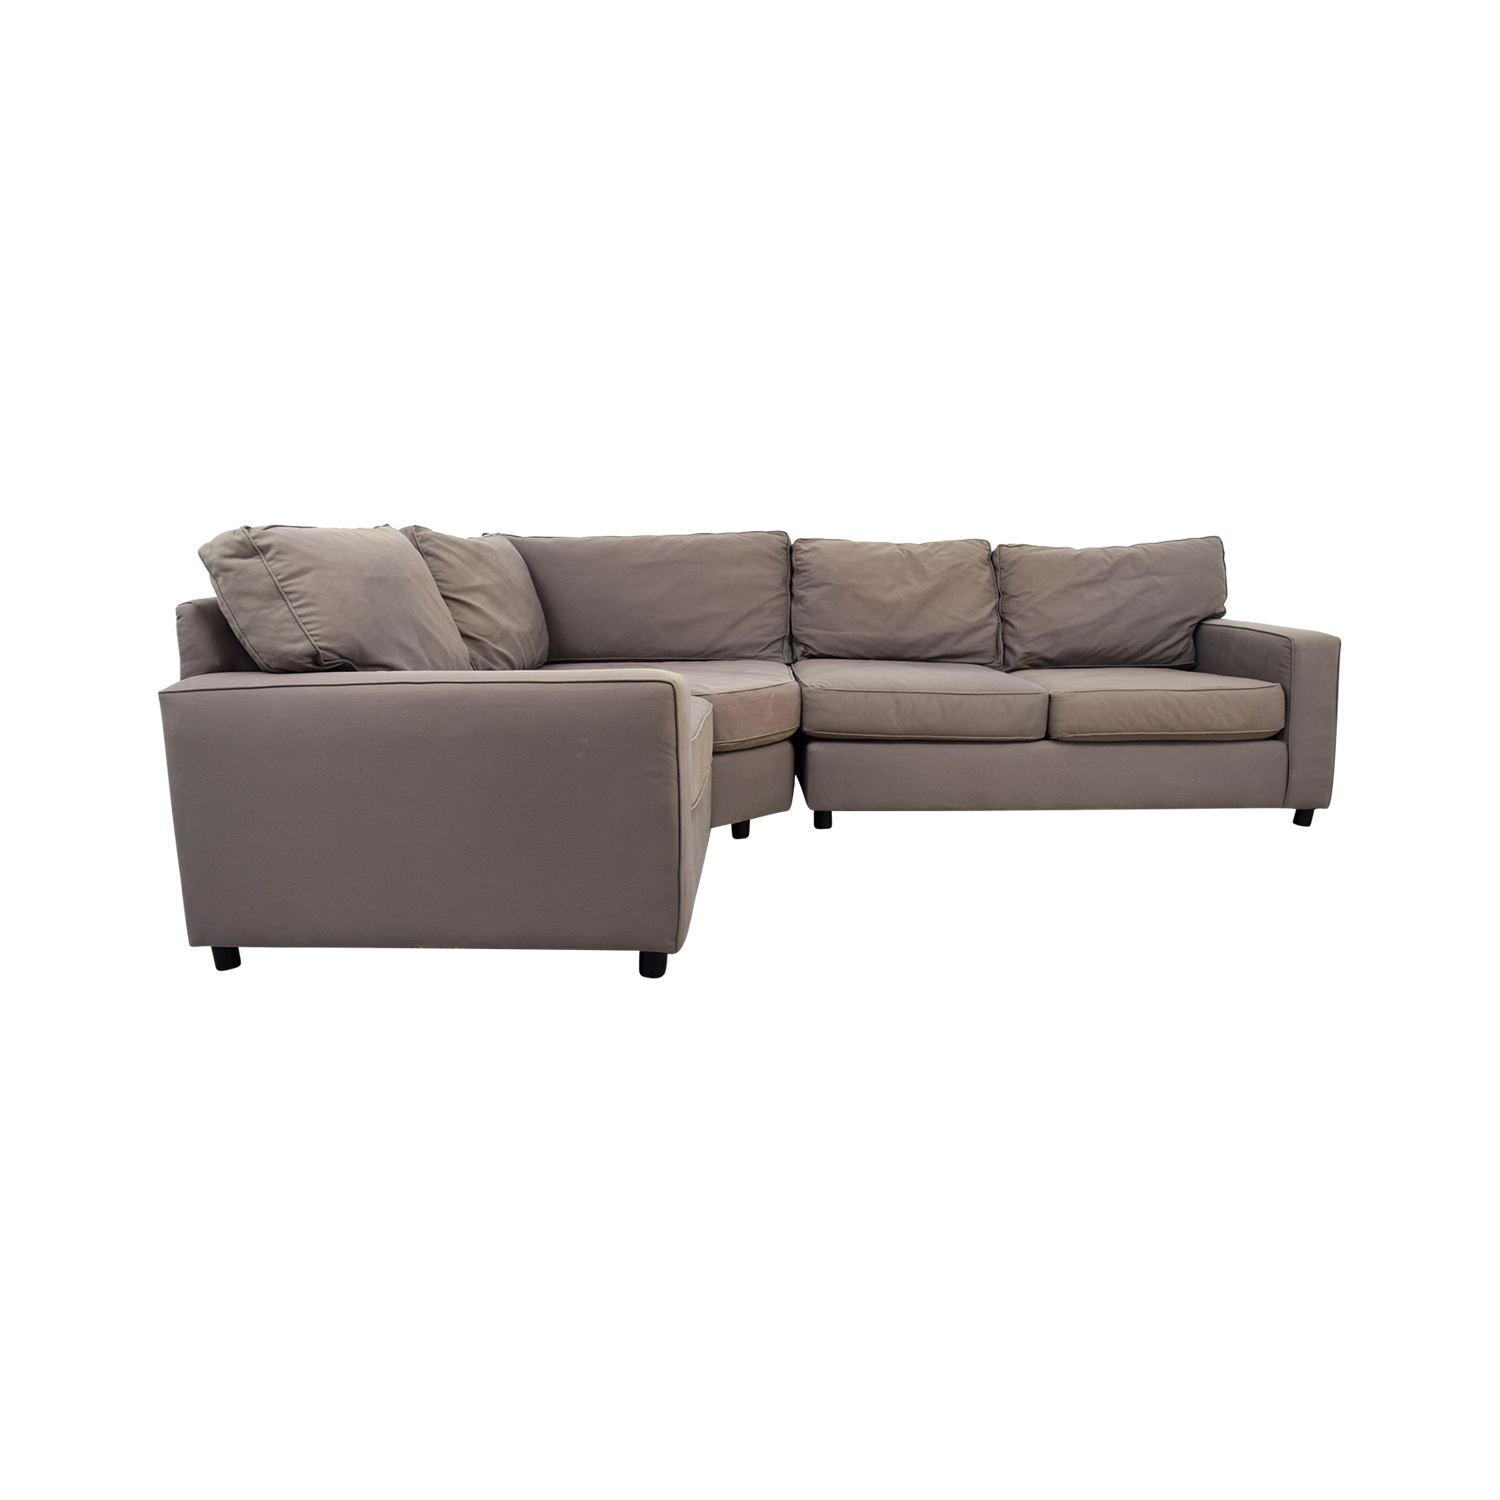 40% OFF Pottery Barn Pottery Barn Grey Sectional Sofa Sofas